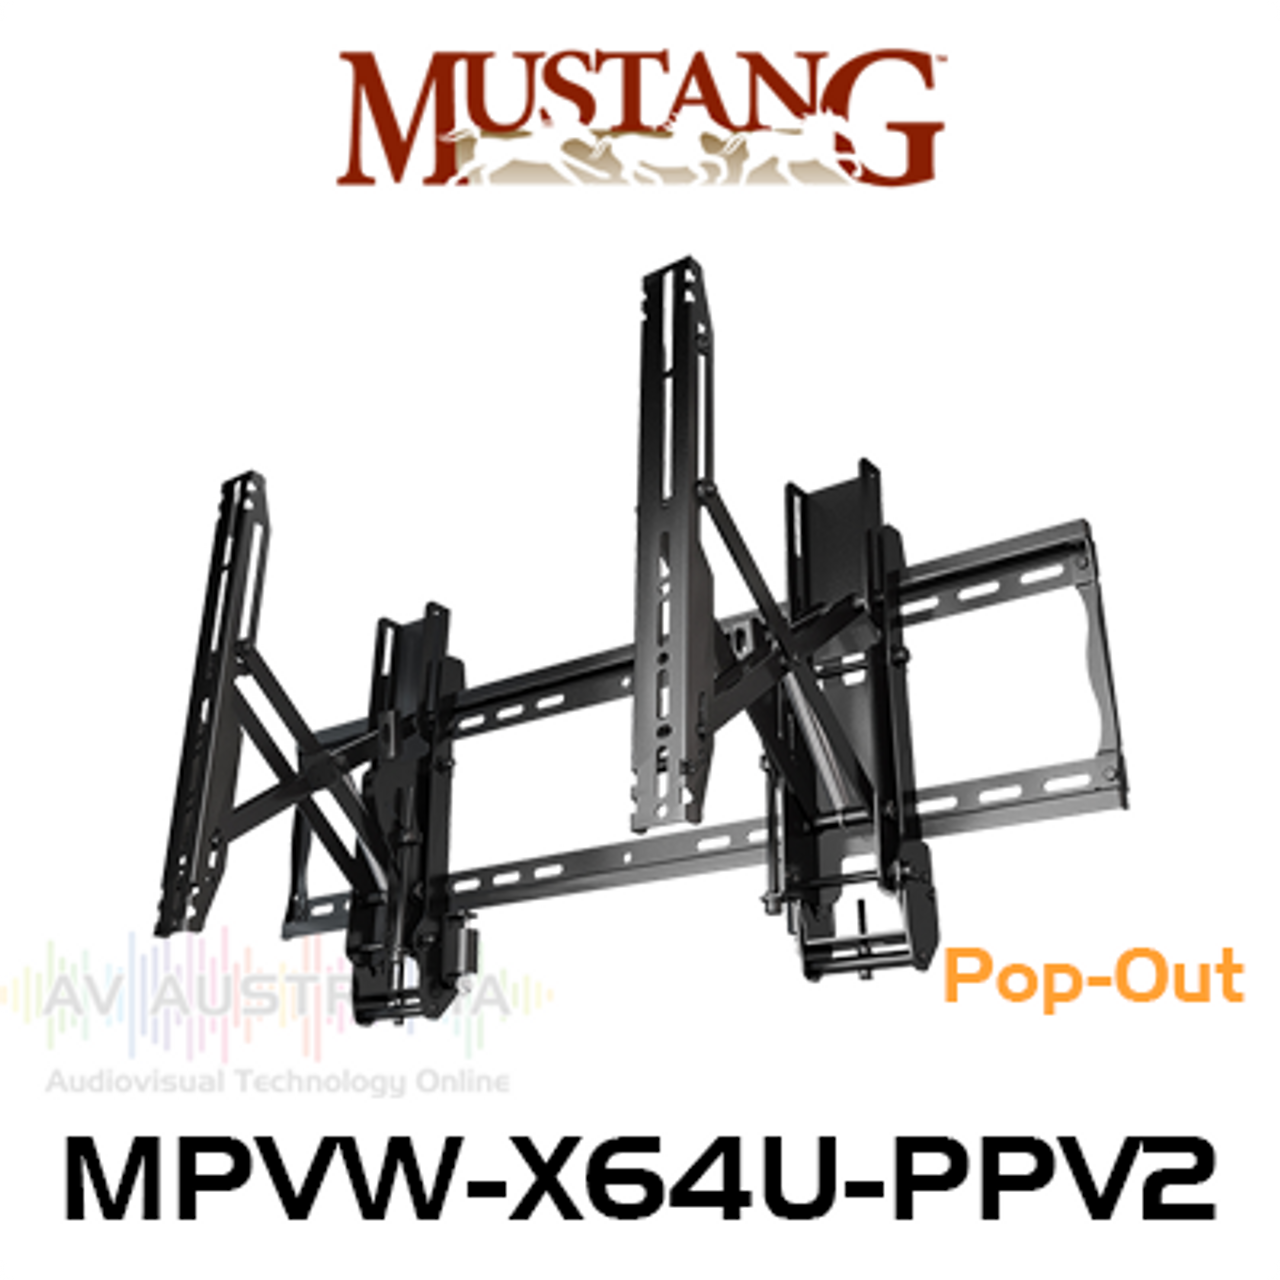 Mustang Pro MPVW-X64U-PPV2 Video Wall Mount For Displays Up To 600x400 VESA